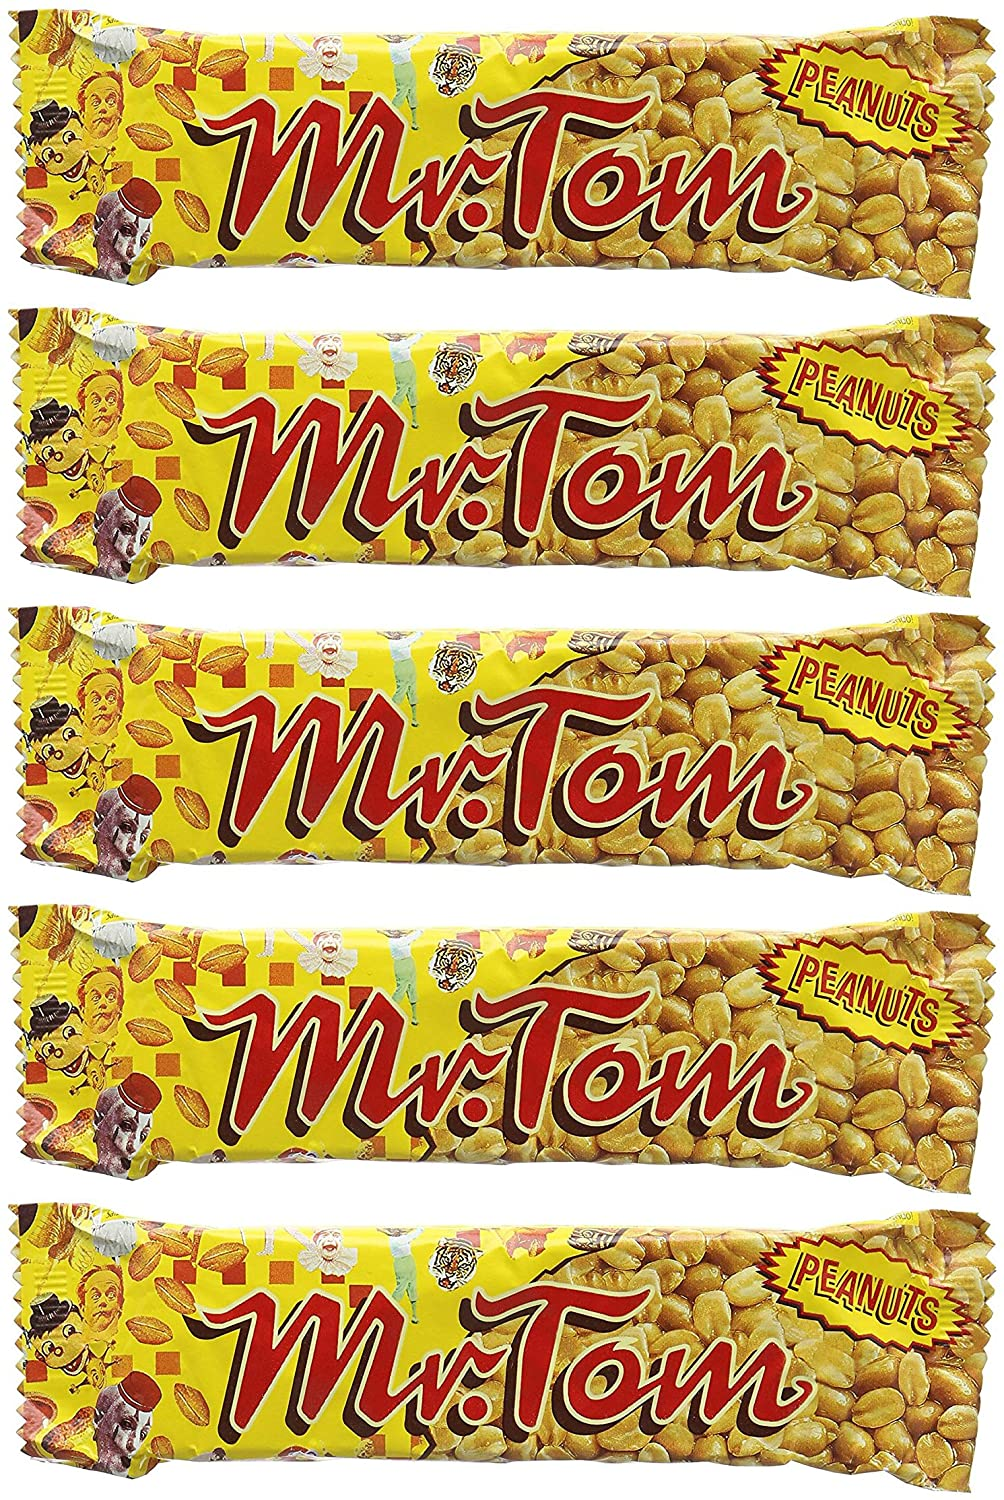 Mr Tom Peanut Crunch Bar